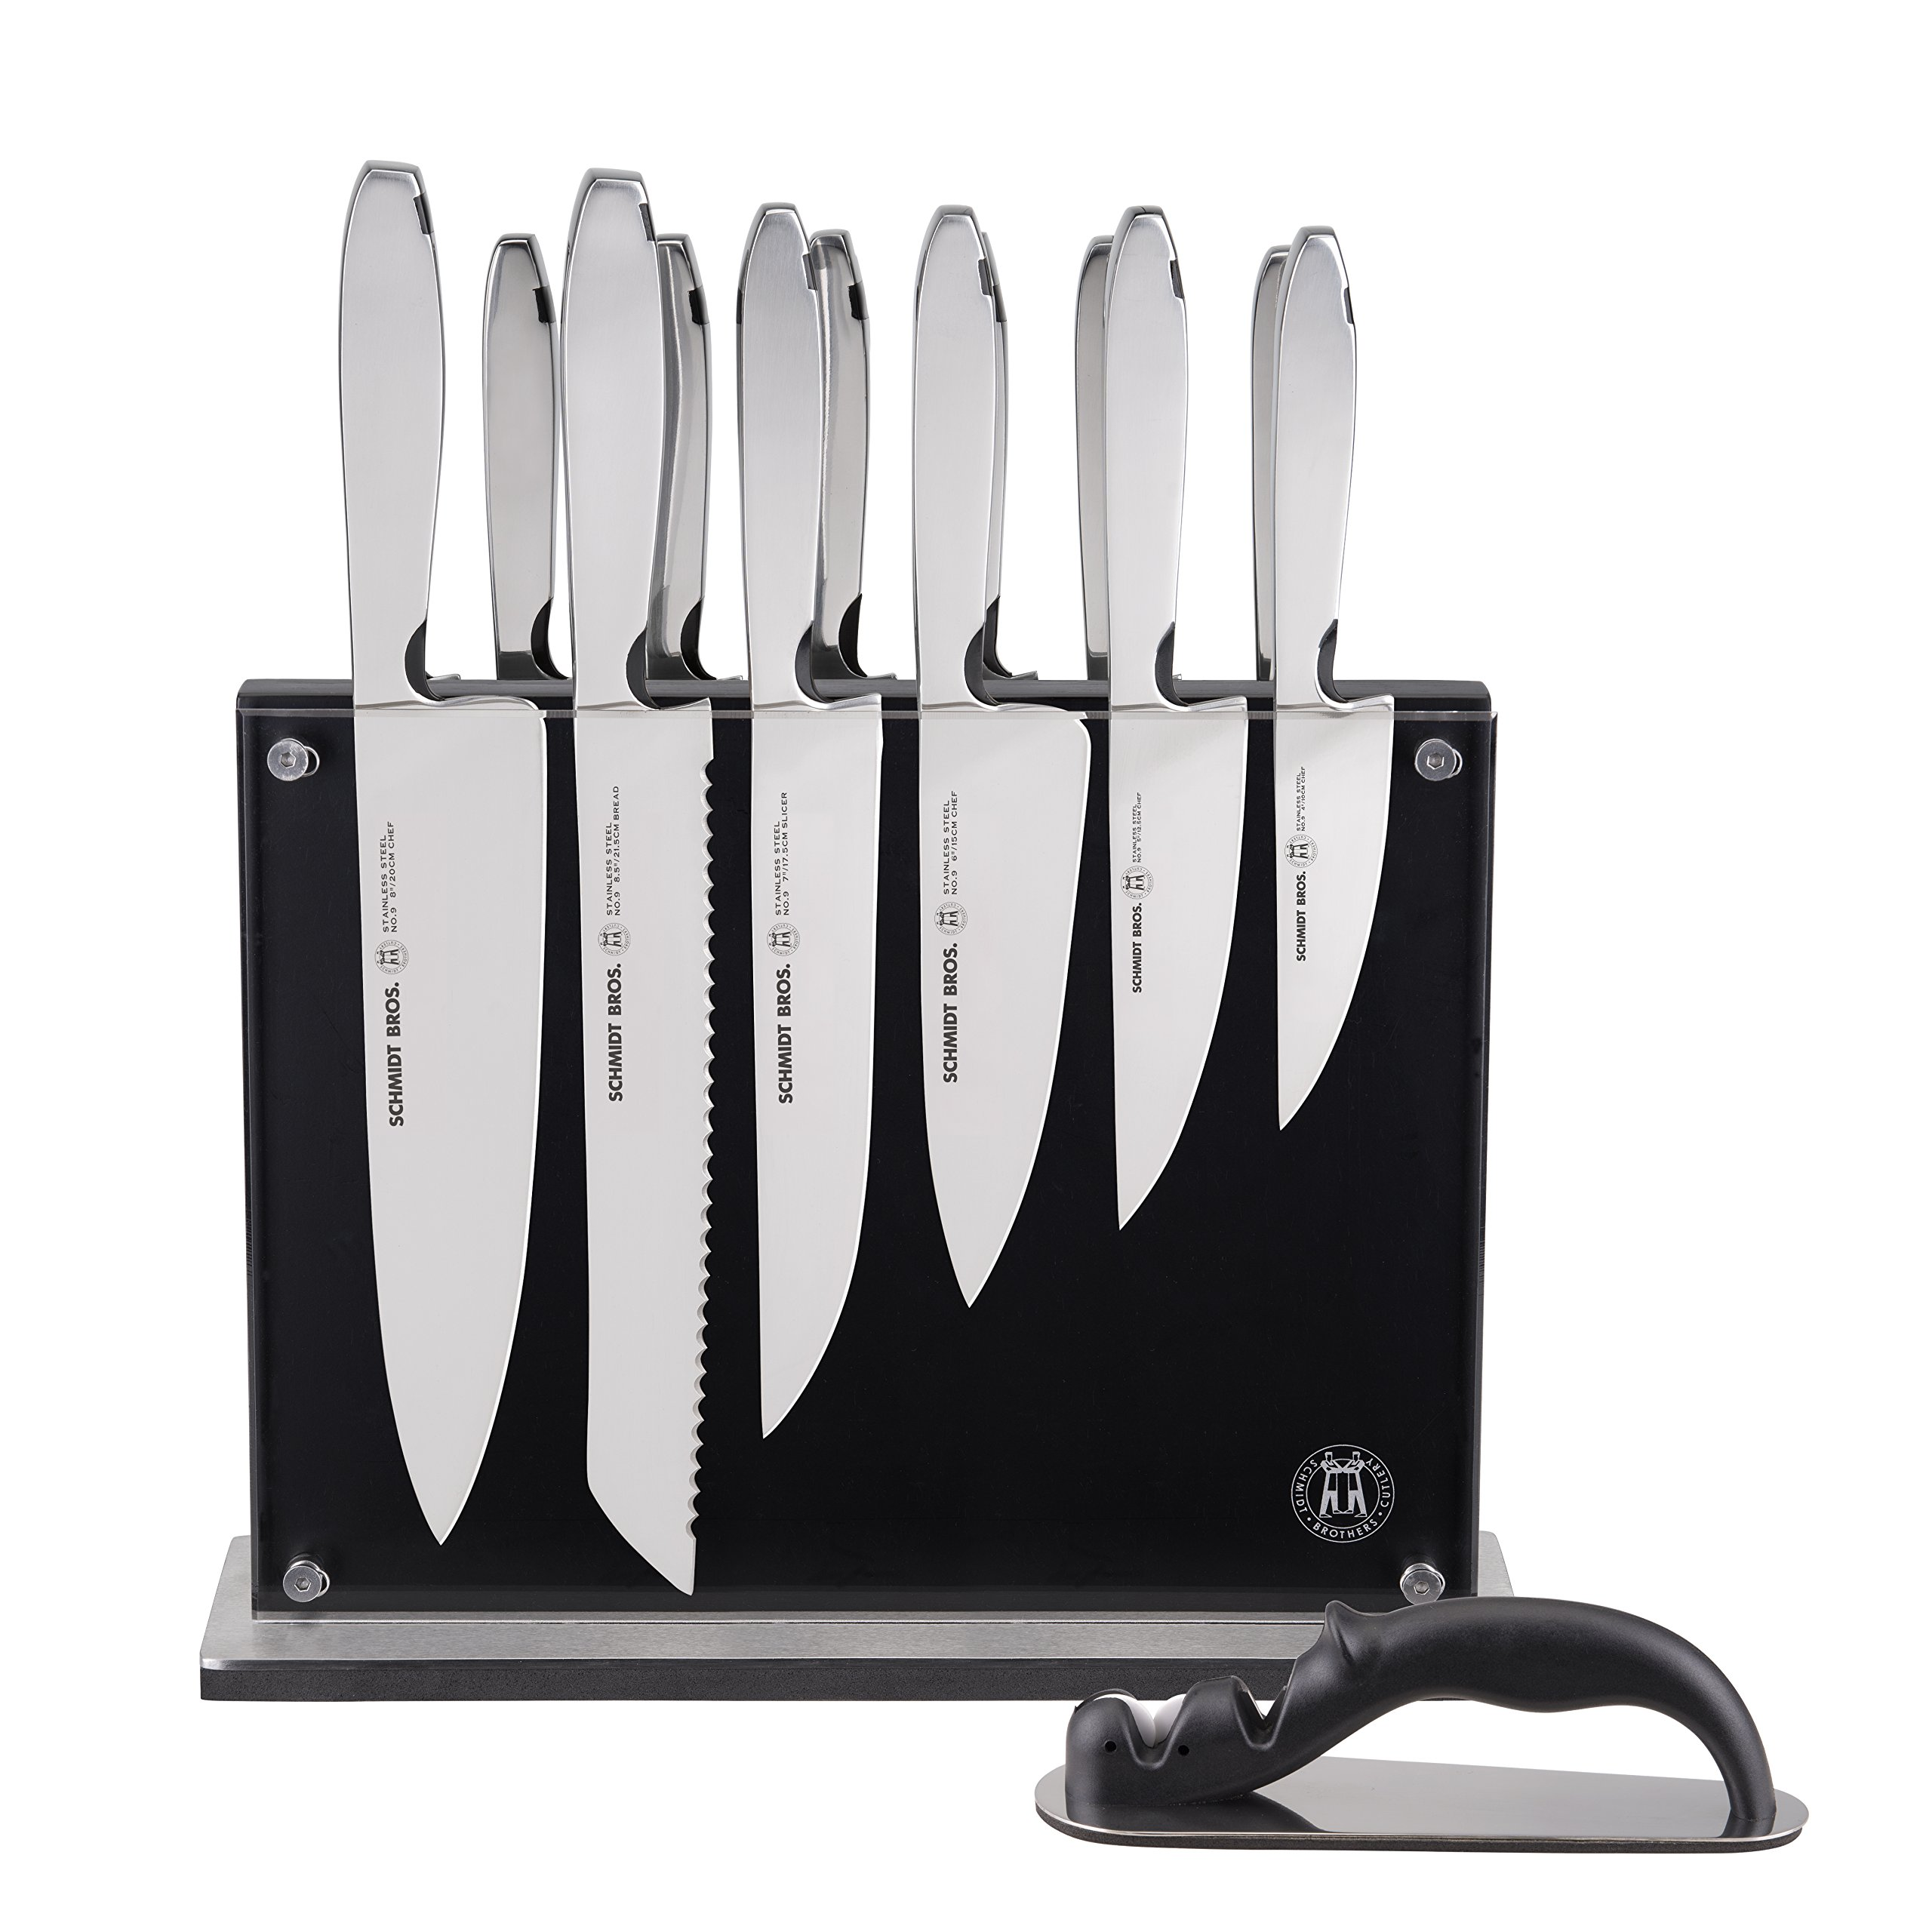 Hudson Home Schmidt Brothers Cutlery,  SSCST15, #9 Steel Cut , 15pc set, Stainless Steel